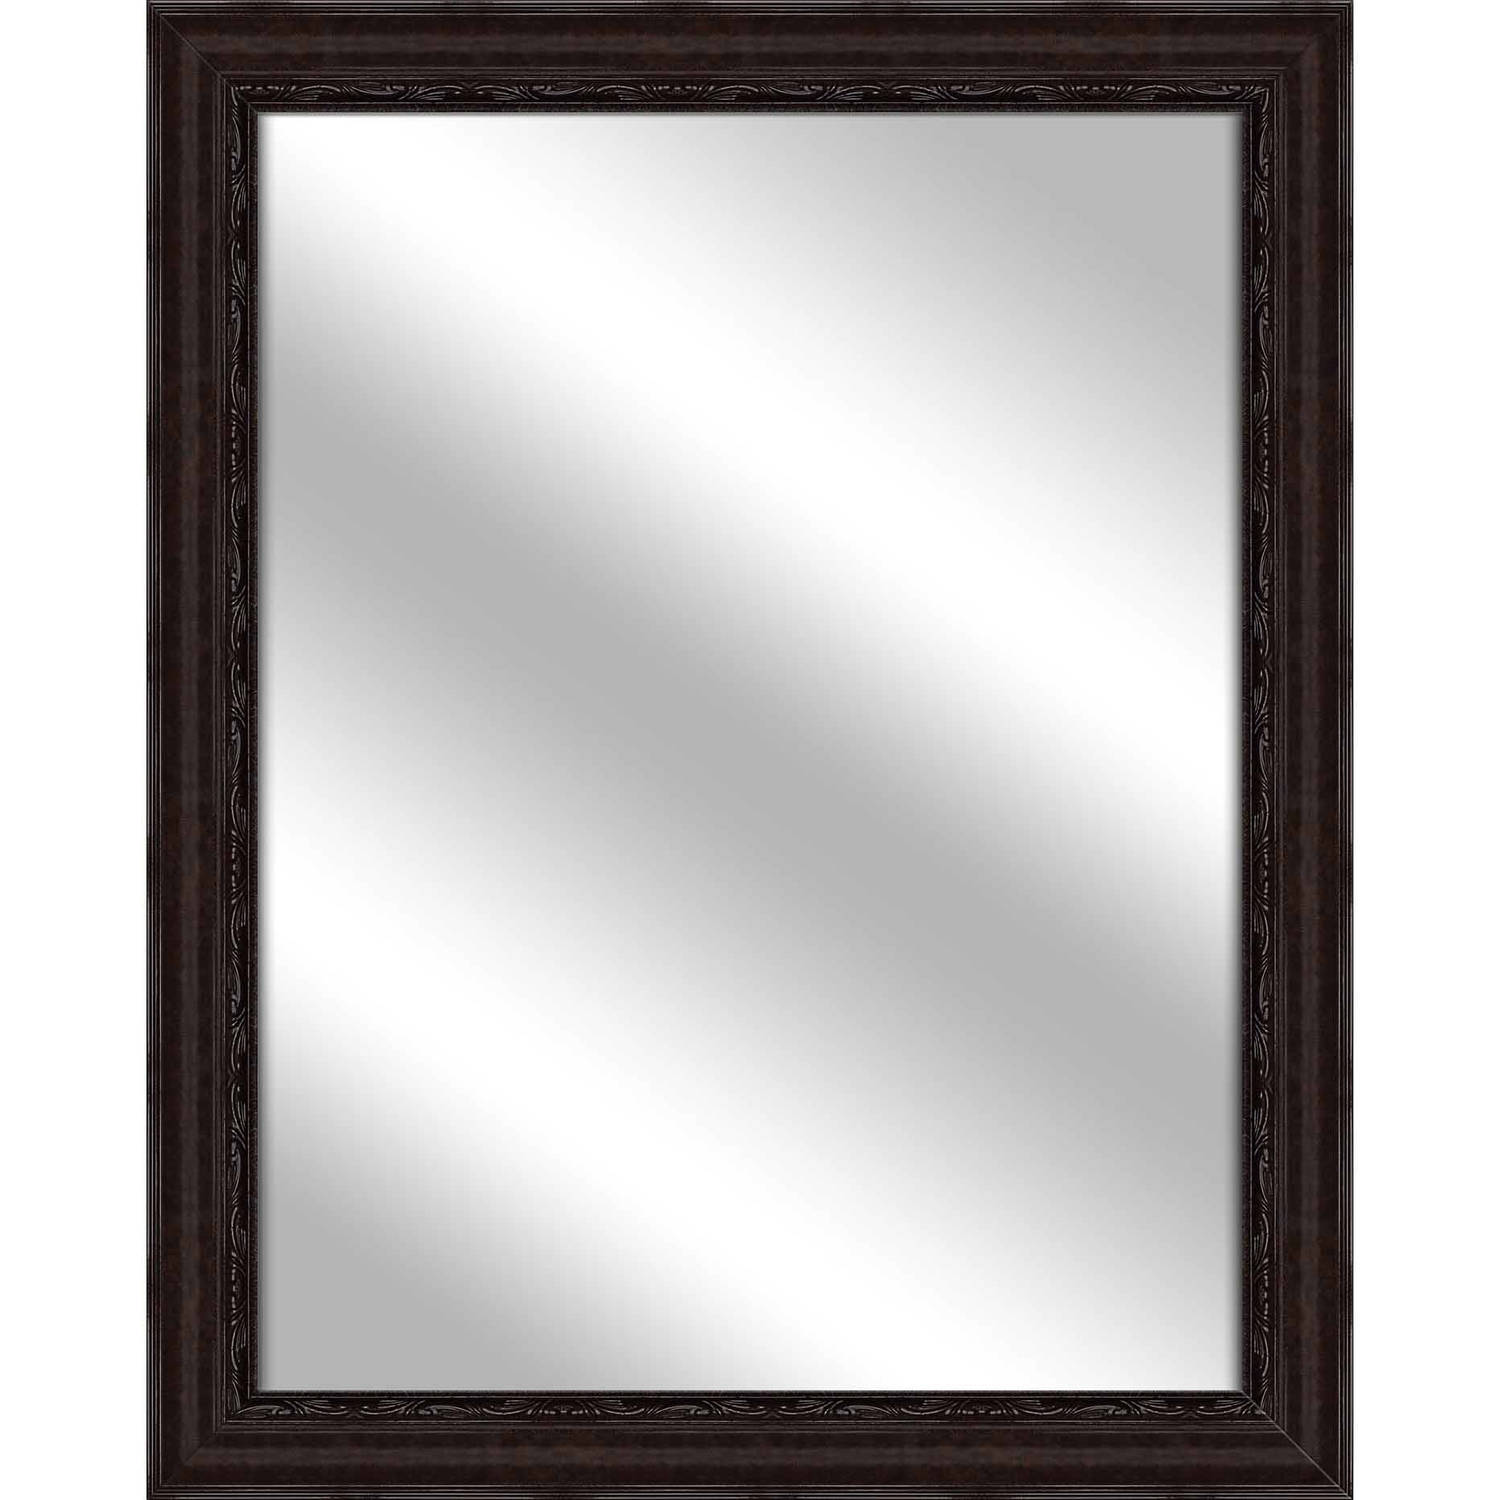 Vanity Mirror, Dark Bronze, 25.75x31.75 by PTM Images